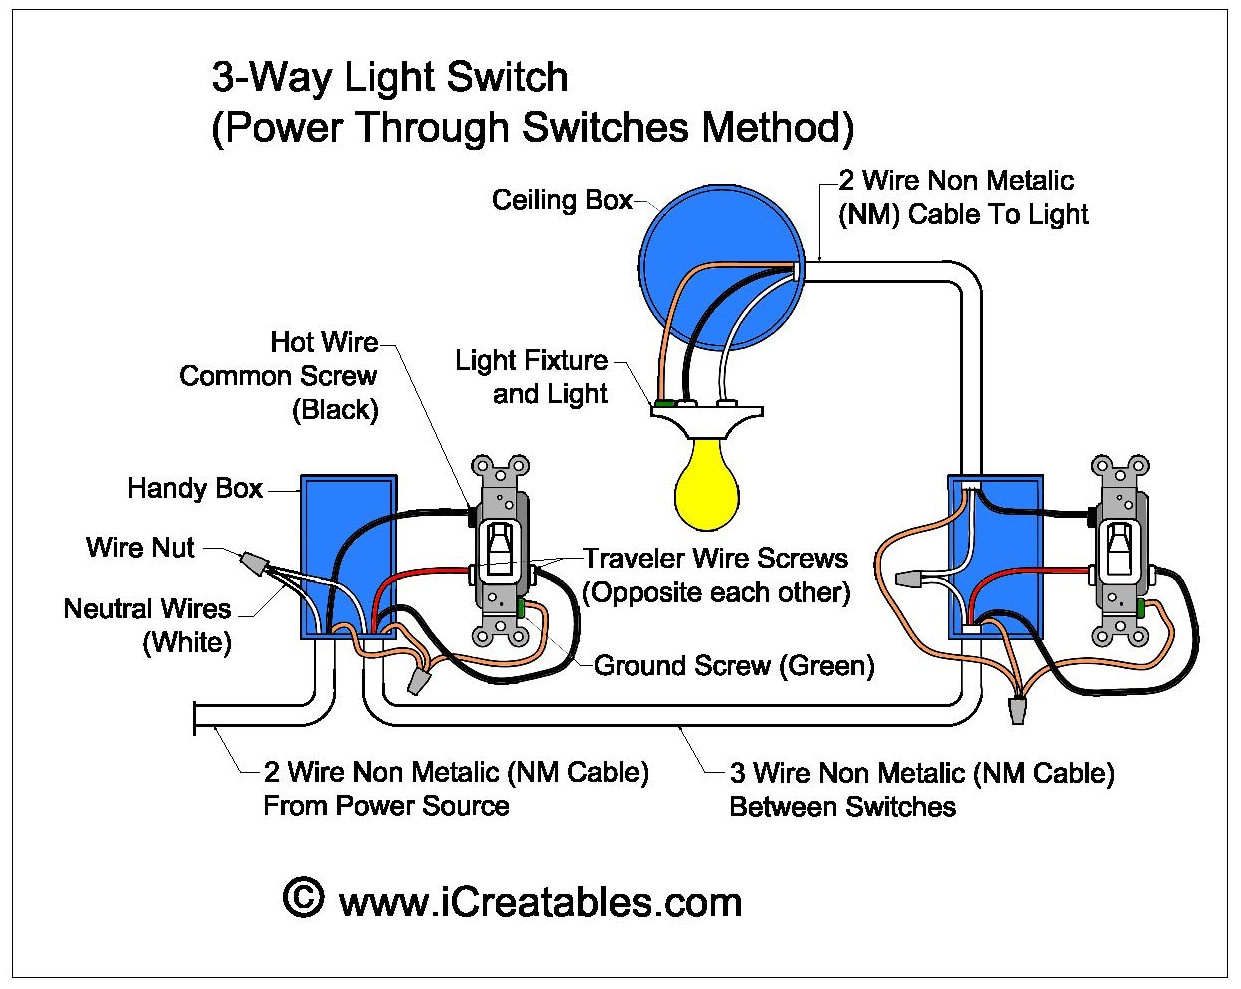 three way switch wiring diagram jpg wire a three way switch icreatables com wiring diagram 2 switches 1 power source at creativeand.co